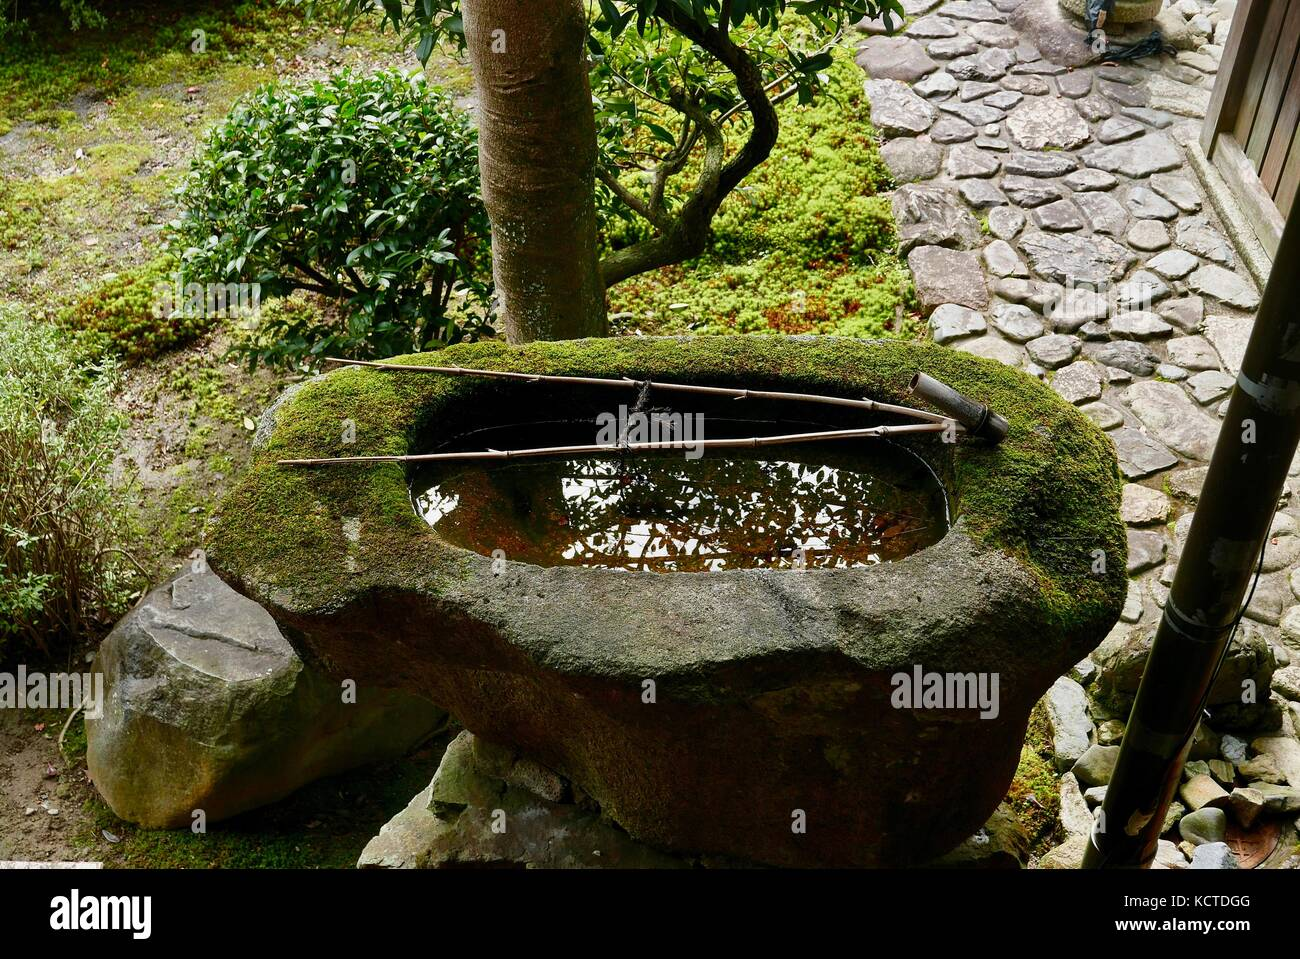 Stone Water Troughs In Japanese Garden   Stock Image